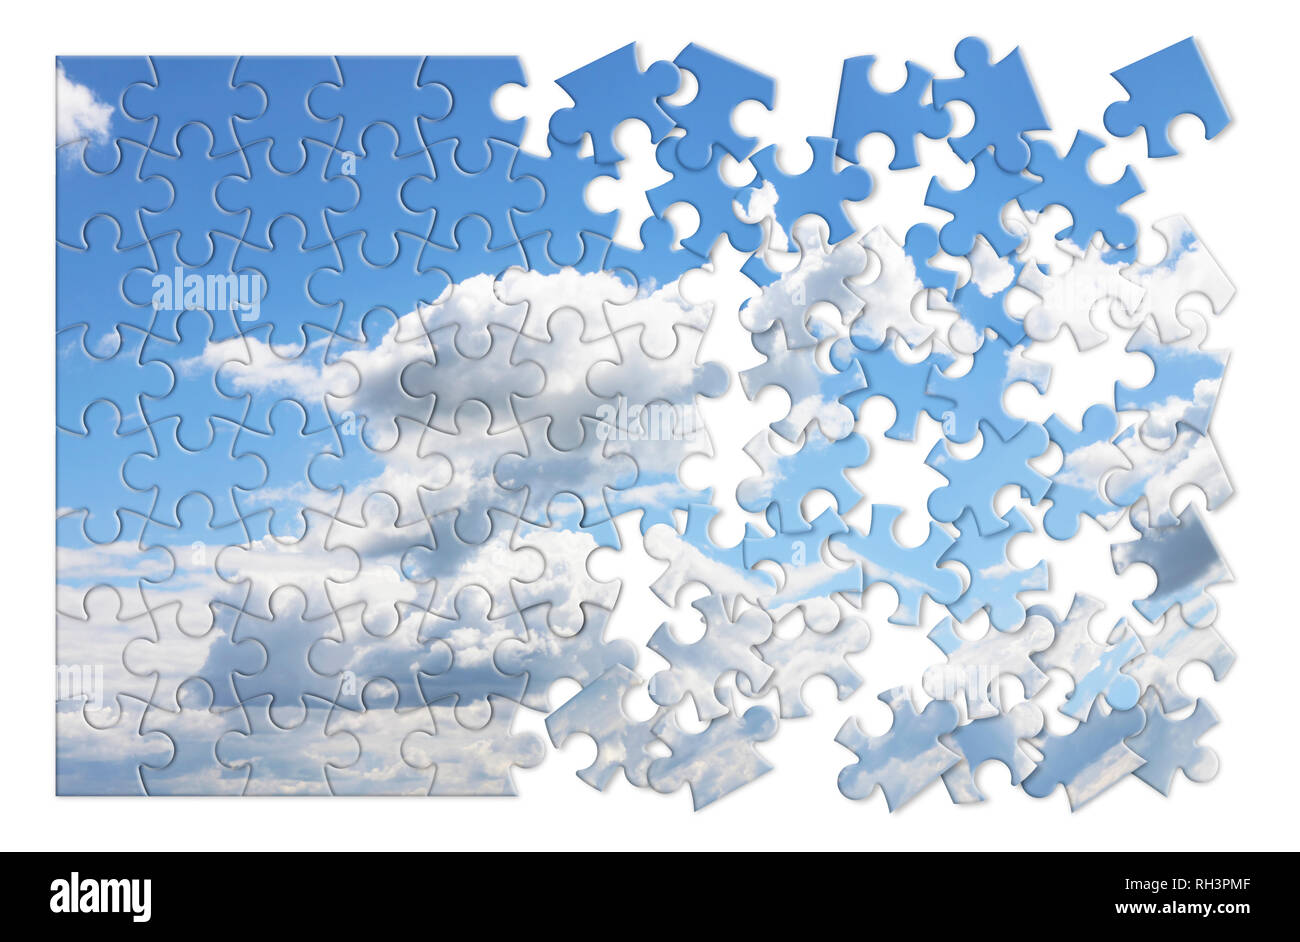 Climate changes concept image with a cloudy sky in puzzle shape - Stock Image